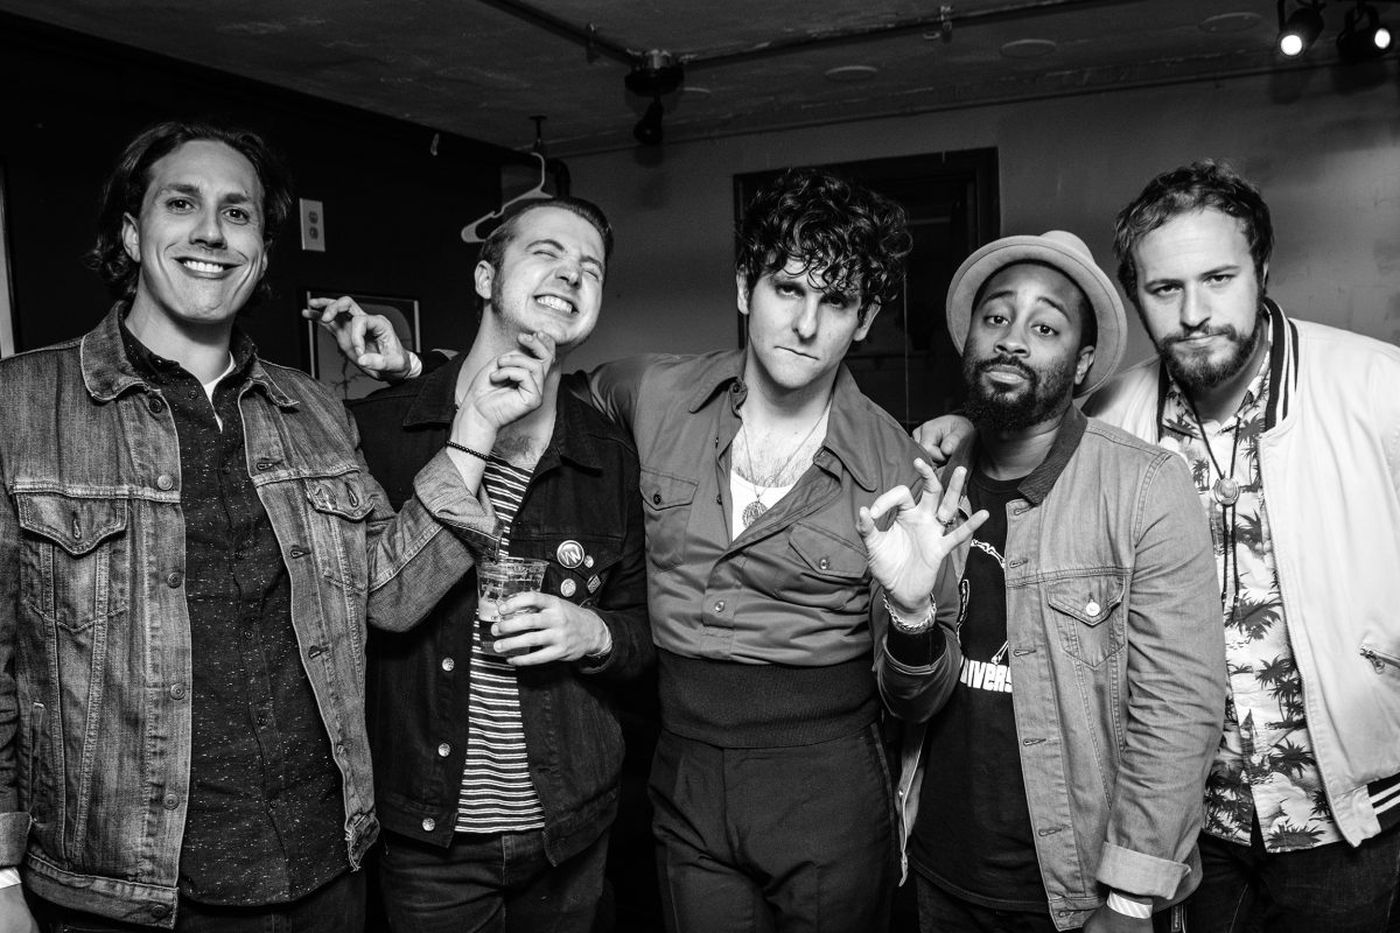 Listen: Elton John interviews Philly's Low Cut Connie on 'Rocket Hour' radio show